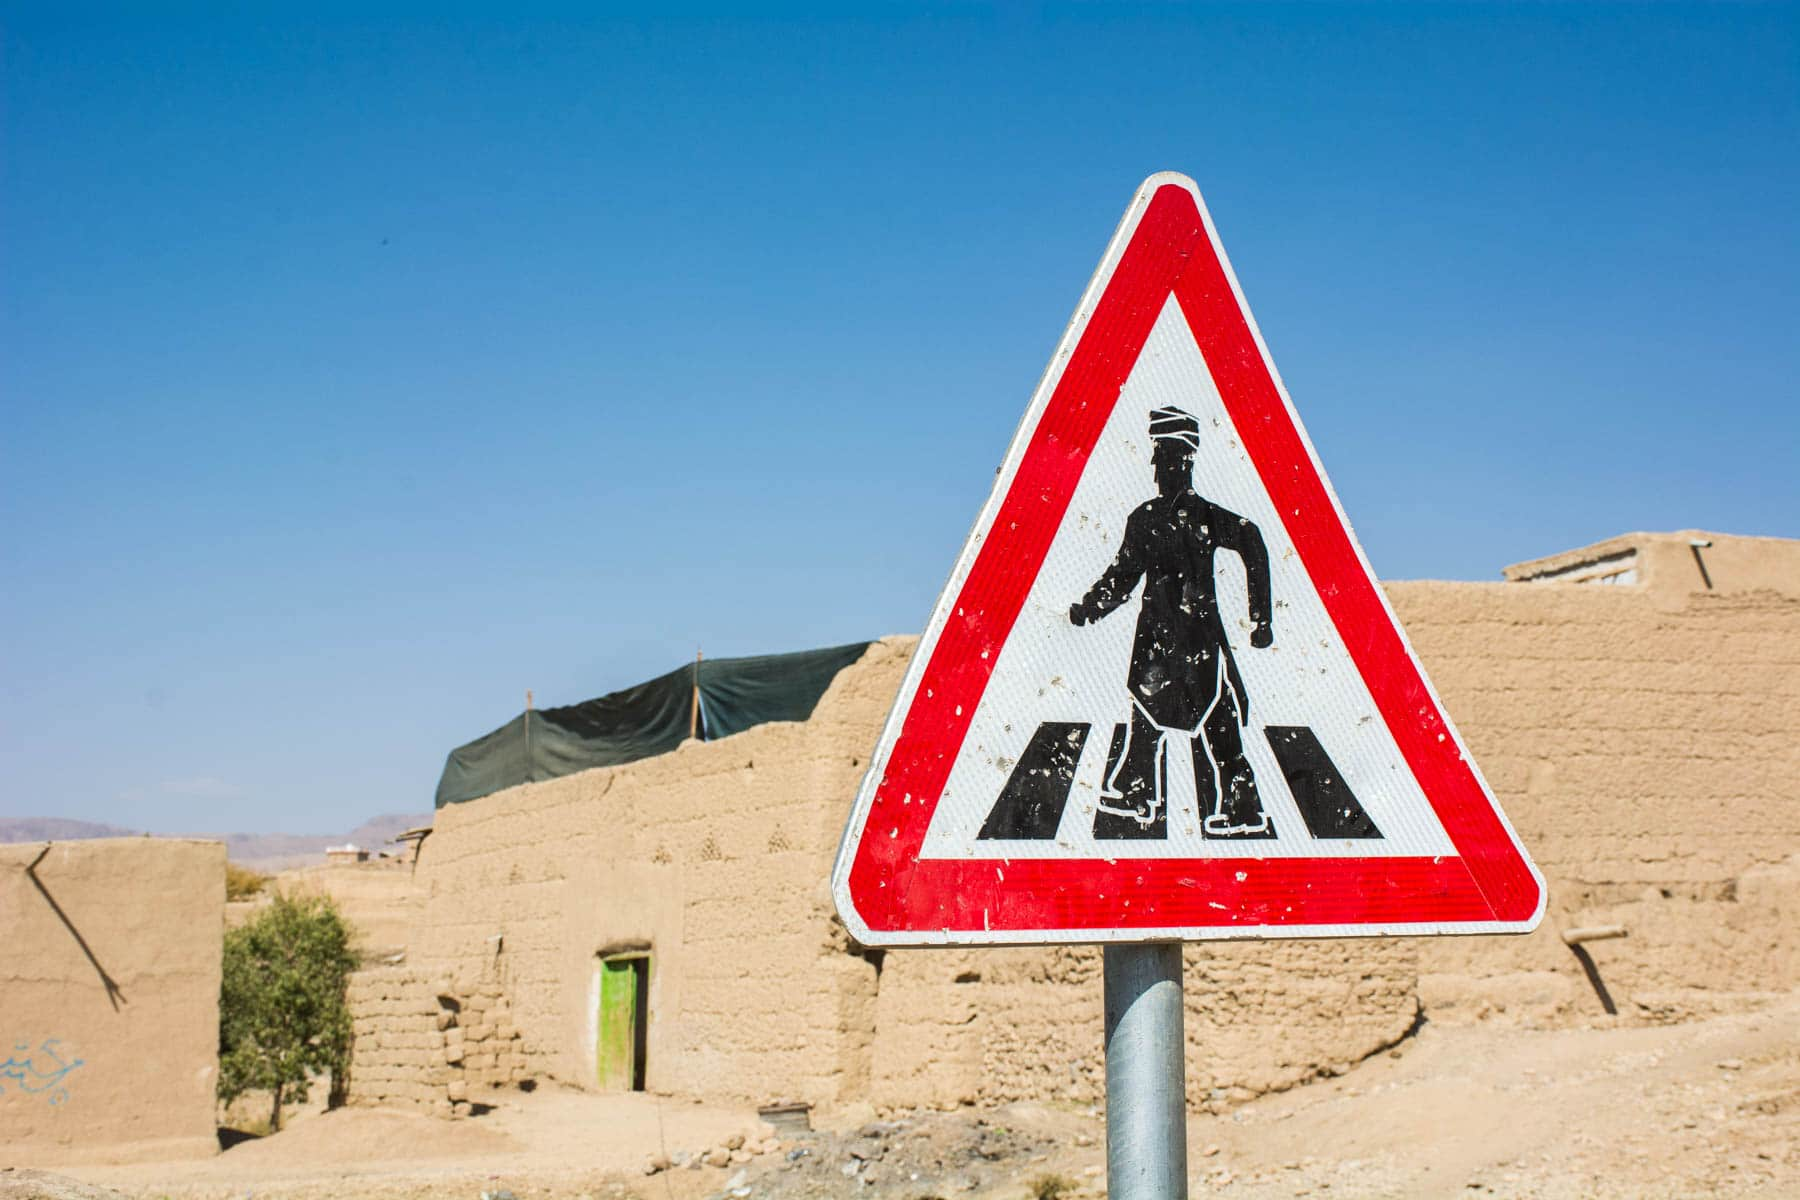 A road sign in Afghanistan